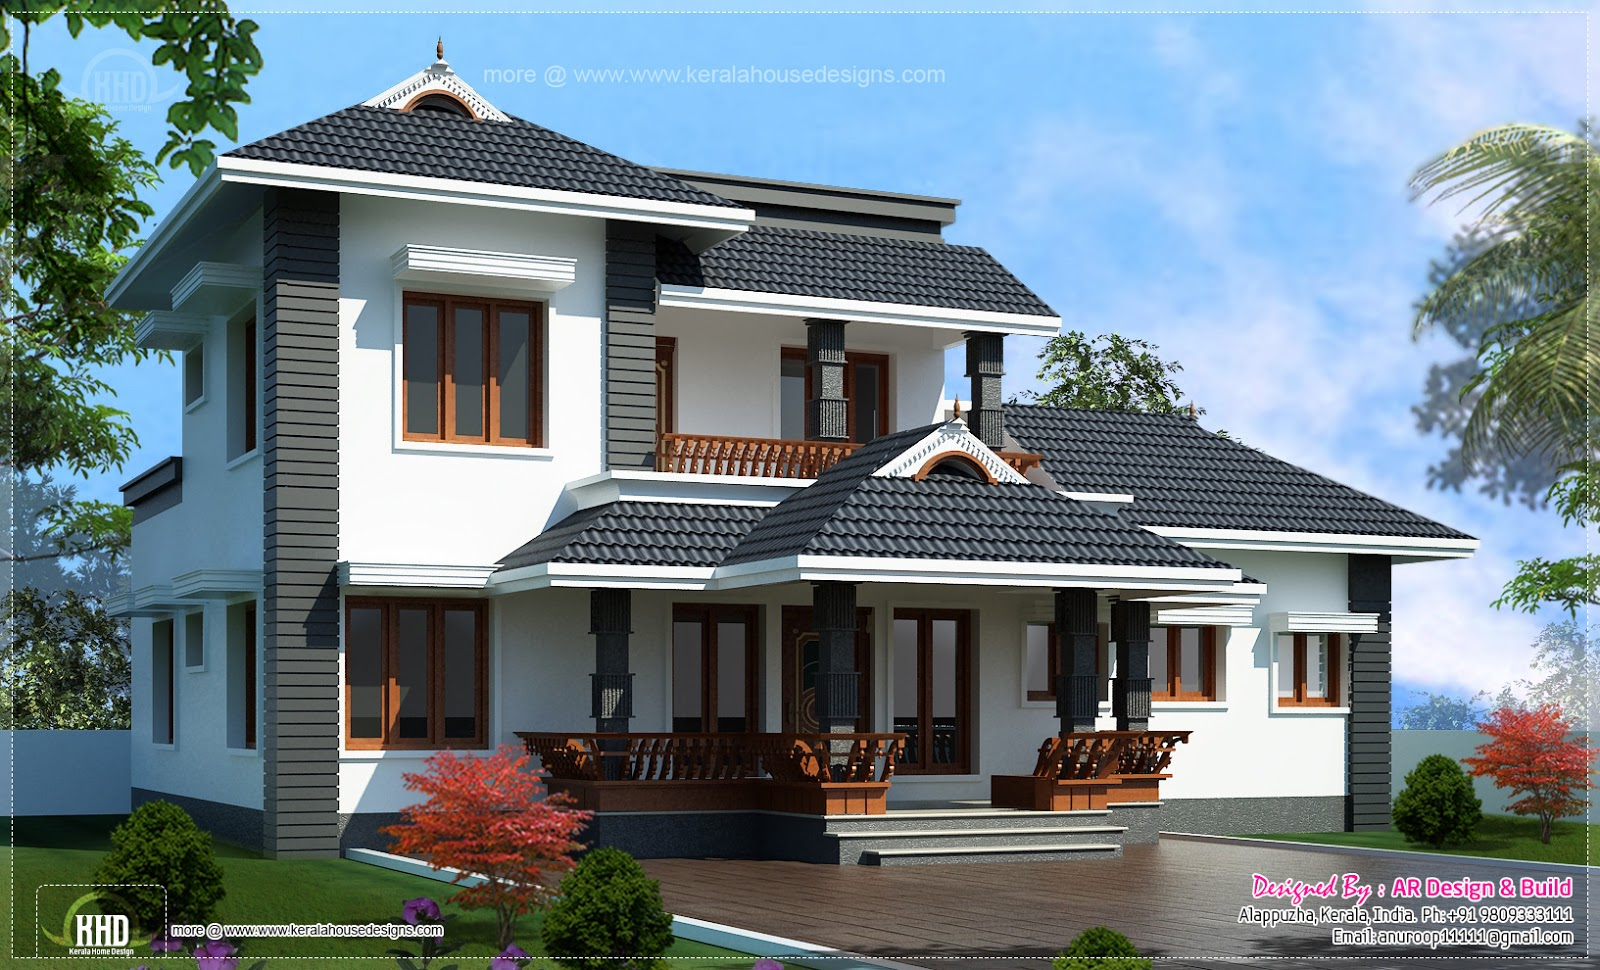 2000 4 bedroom sloping roof residence kerala for House plan 2000 sq ft india